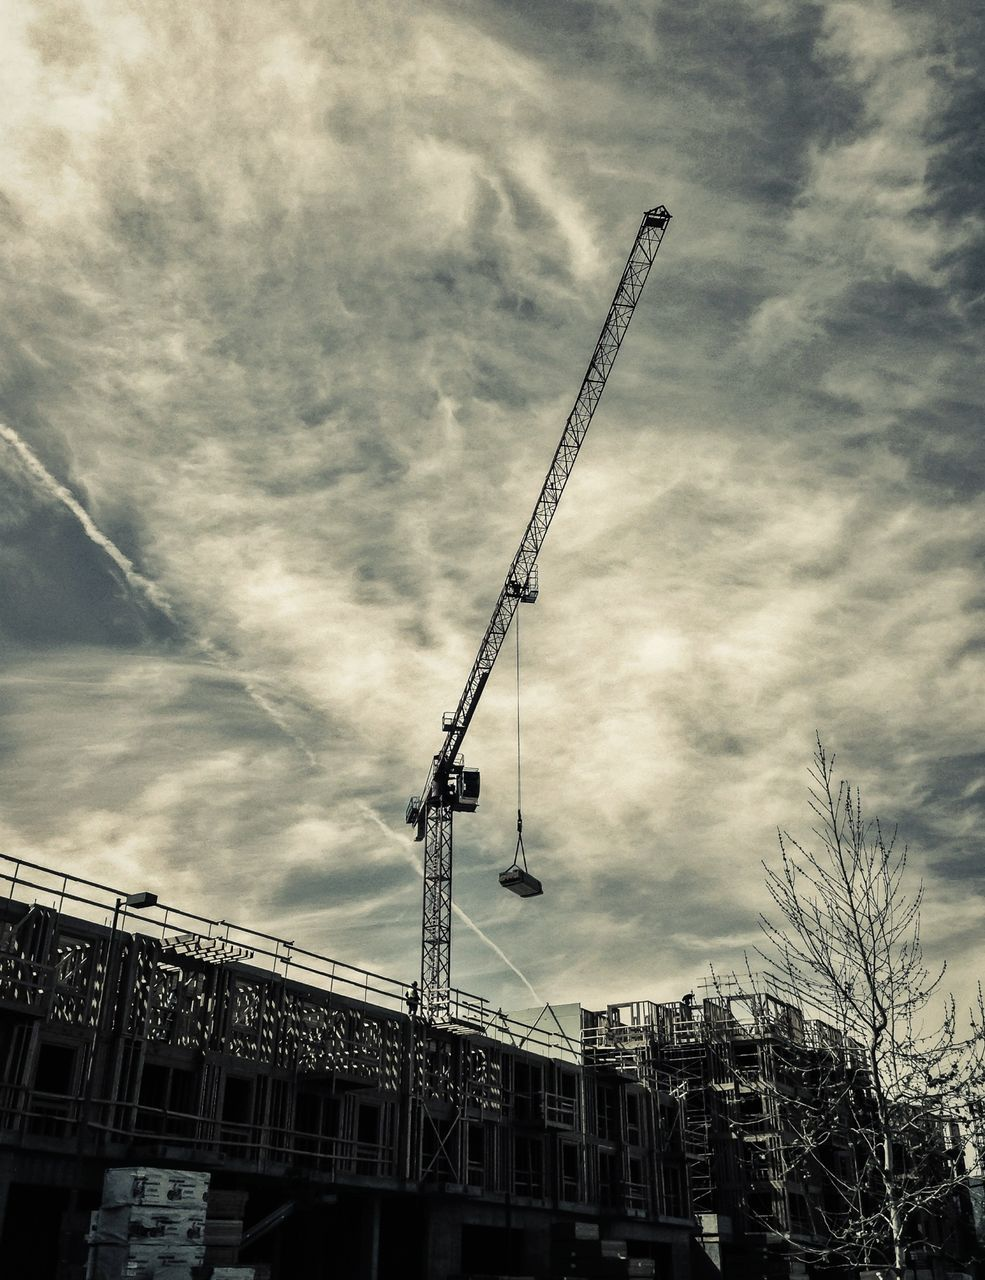 architecture, built structure, building exterior, sky, low angle view, cloud - sky, no people, construction site, outdoors, day, city